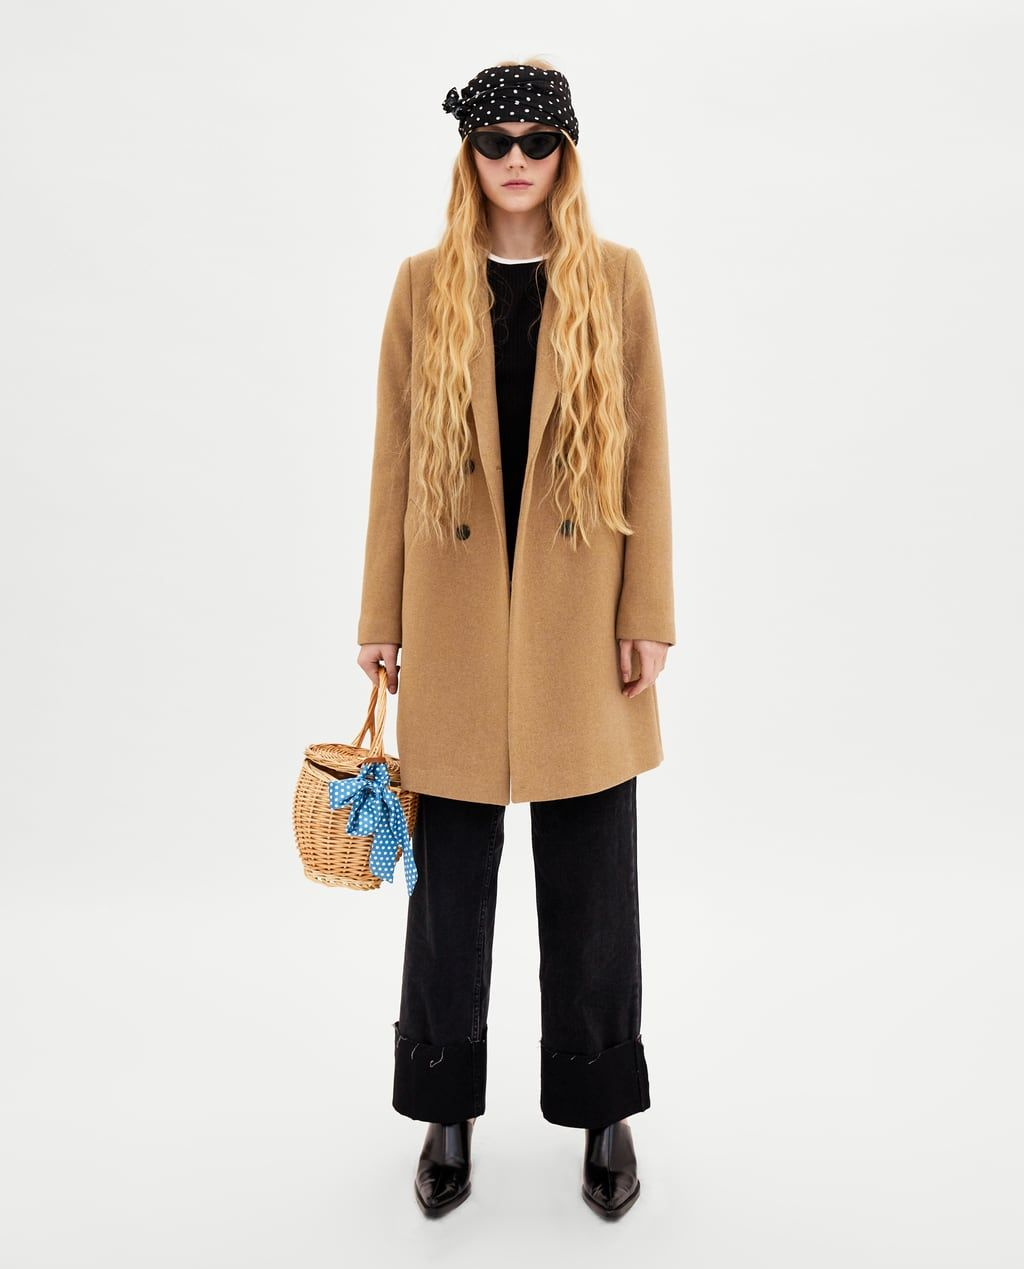 Tomboy Coat View All Outerwear Woman Zara United States Fav Looks